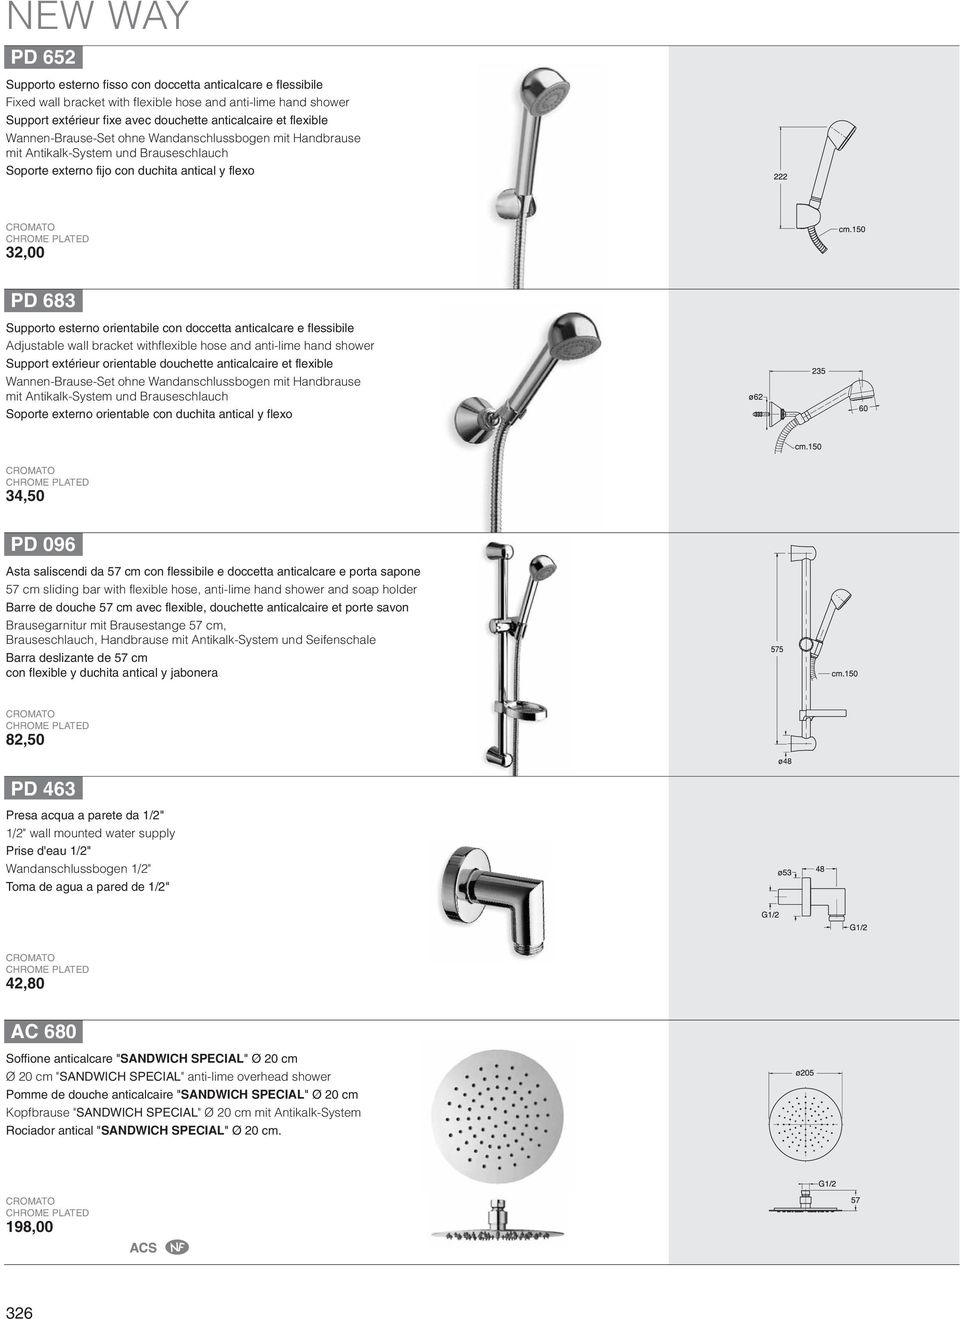 anticalcare e flessibile Adjustable wall bracket withflexible hose and anti-lime hand shower Support extérieur orientable douchette anticalcaire et flexible Wannen-Brause-Set ohne Wandanschlussbogen